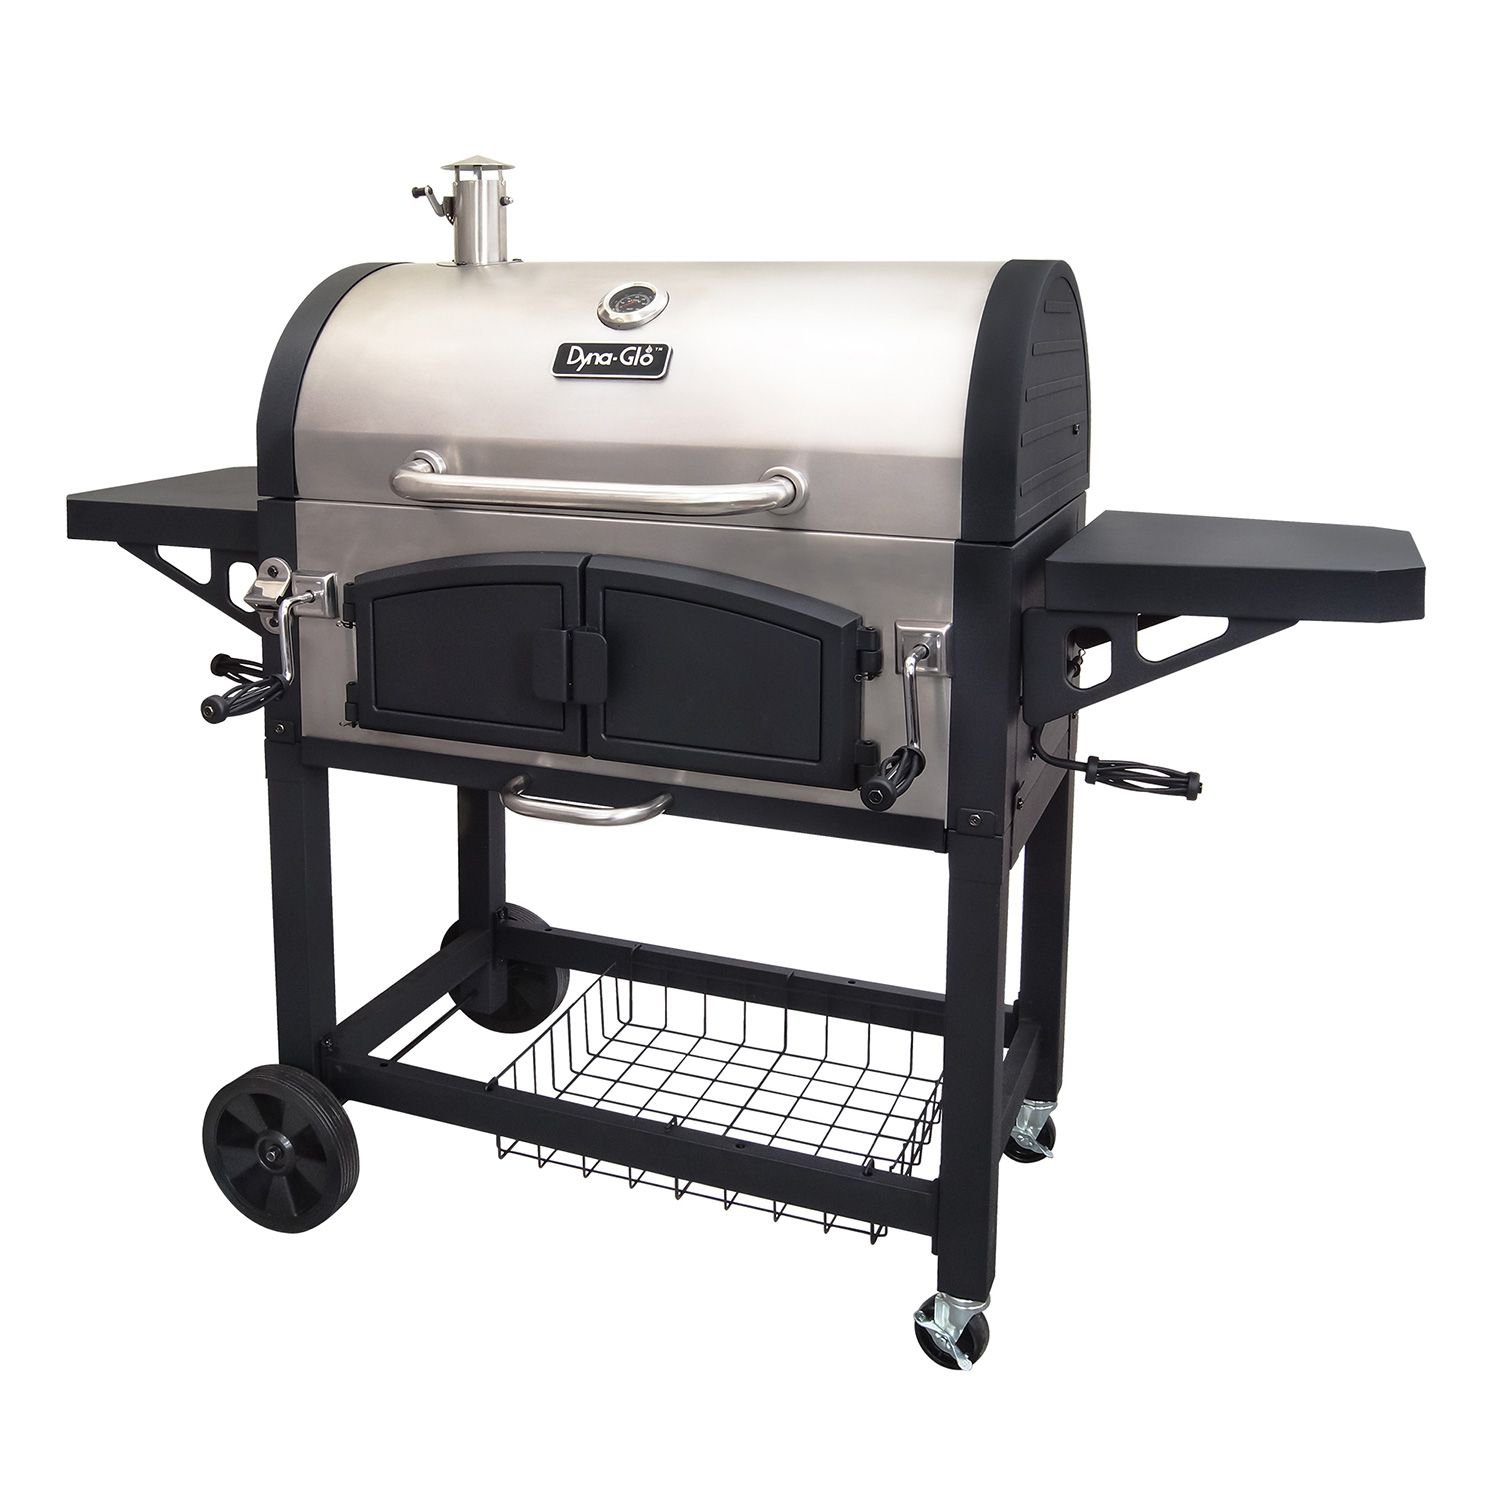 Dyna-Glo Charcoal Dual-Zone Stainless Steel Premium Grill